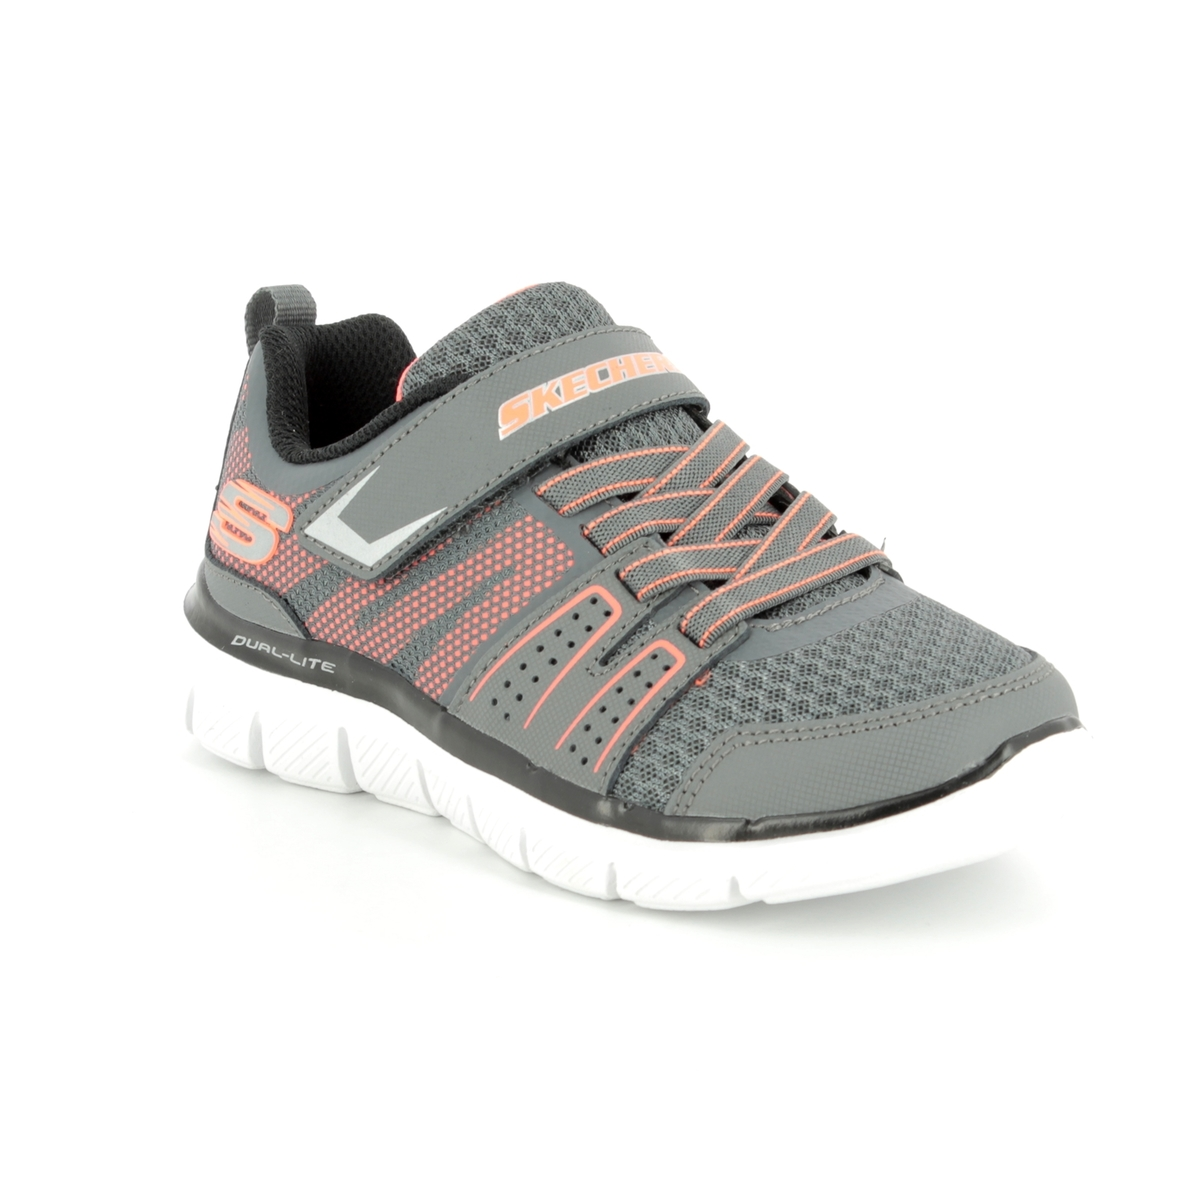 739a6e92227 Skechers High Torque 97456 CCOR Charcoal grey trainers